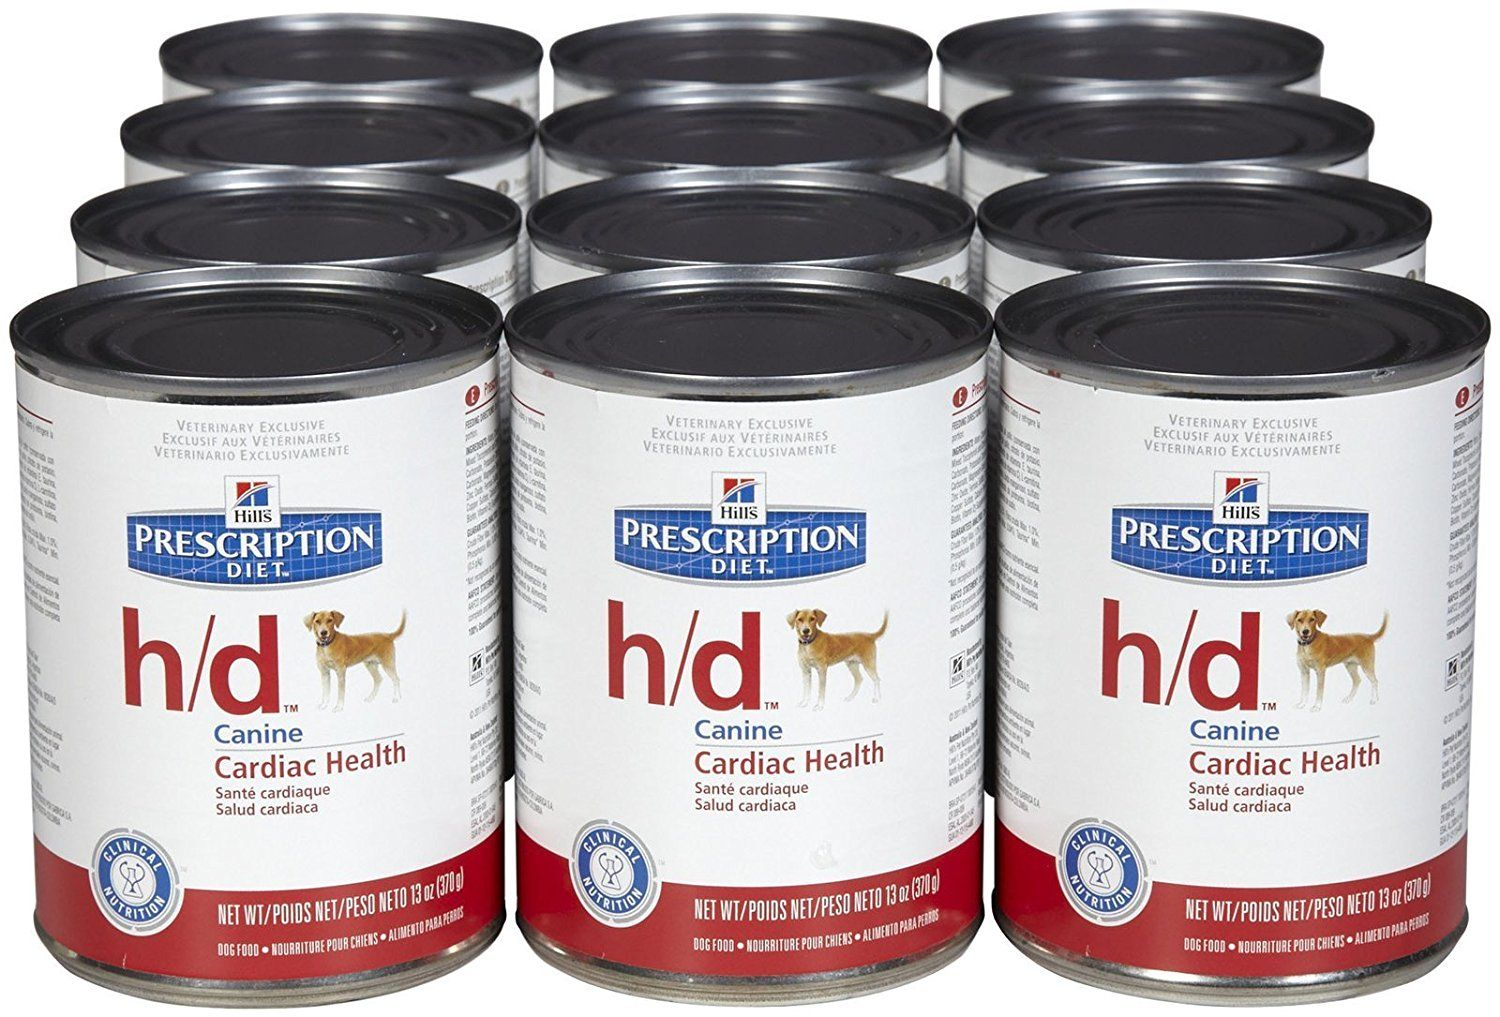 Hill S Prescription Diet H D Cardiac Health Dog Food 12 X 13oz Cans Click Image To Review More Details This Dog Food Recipes Canned Dog Food Canine Health